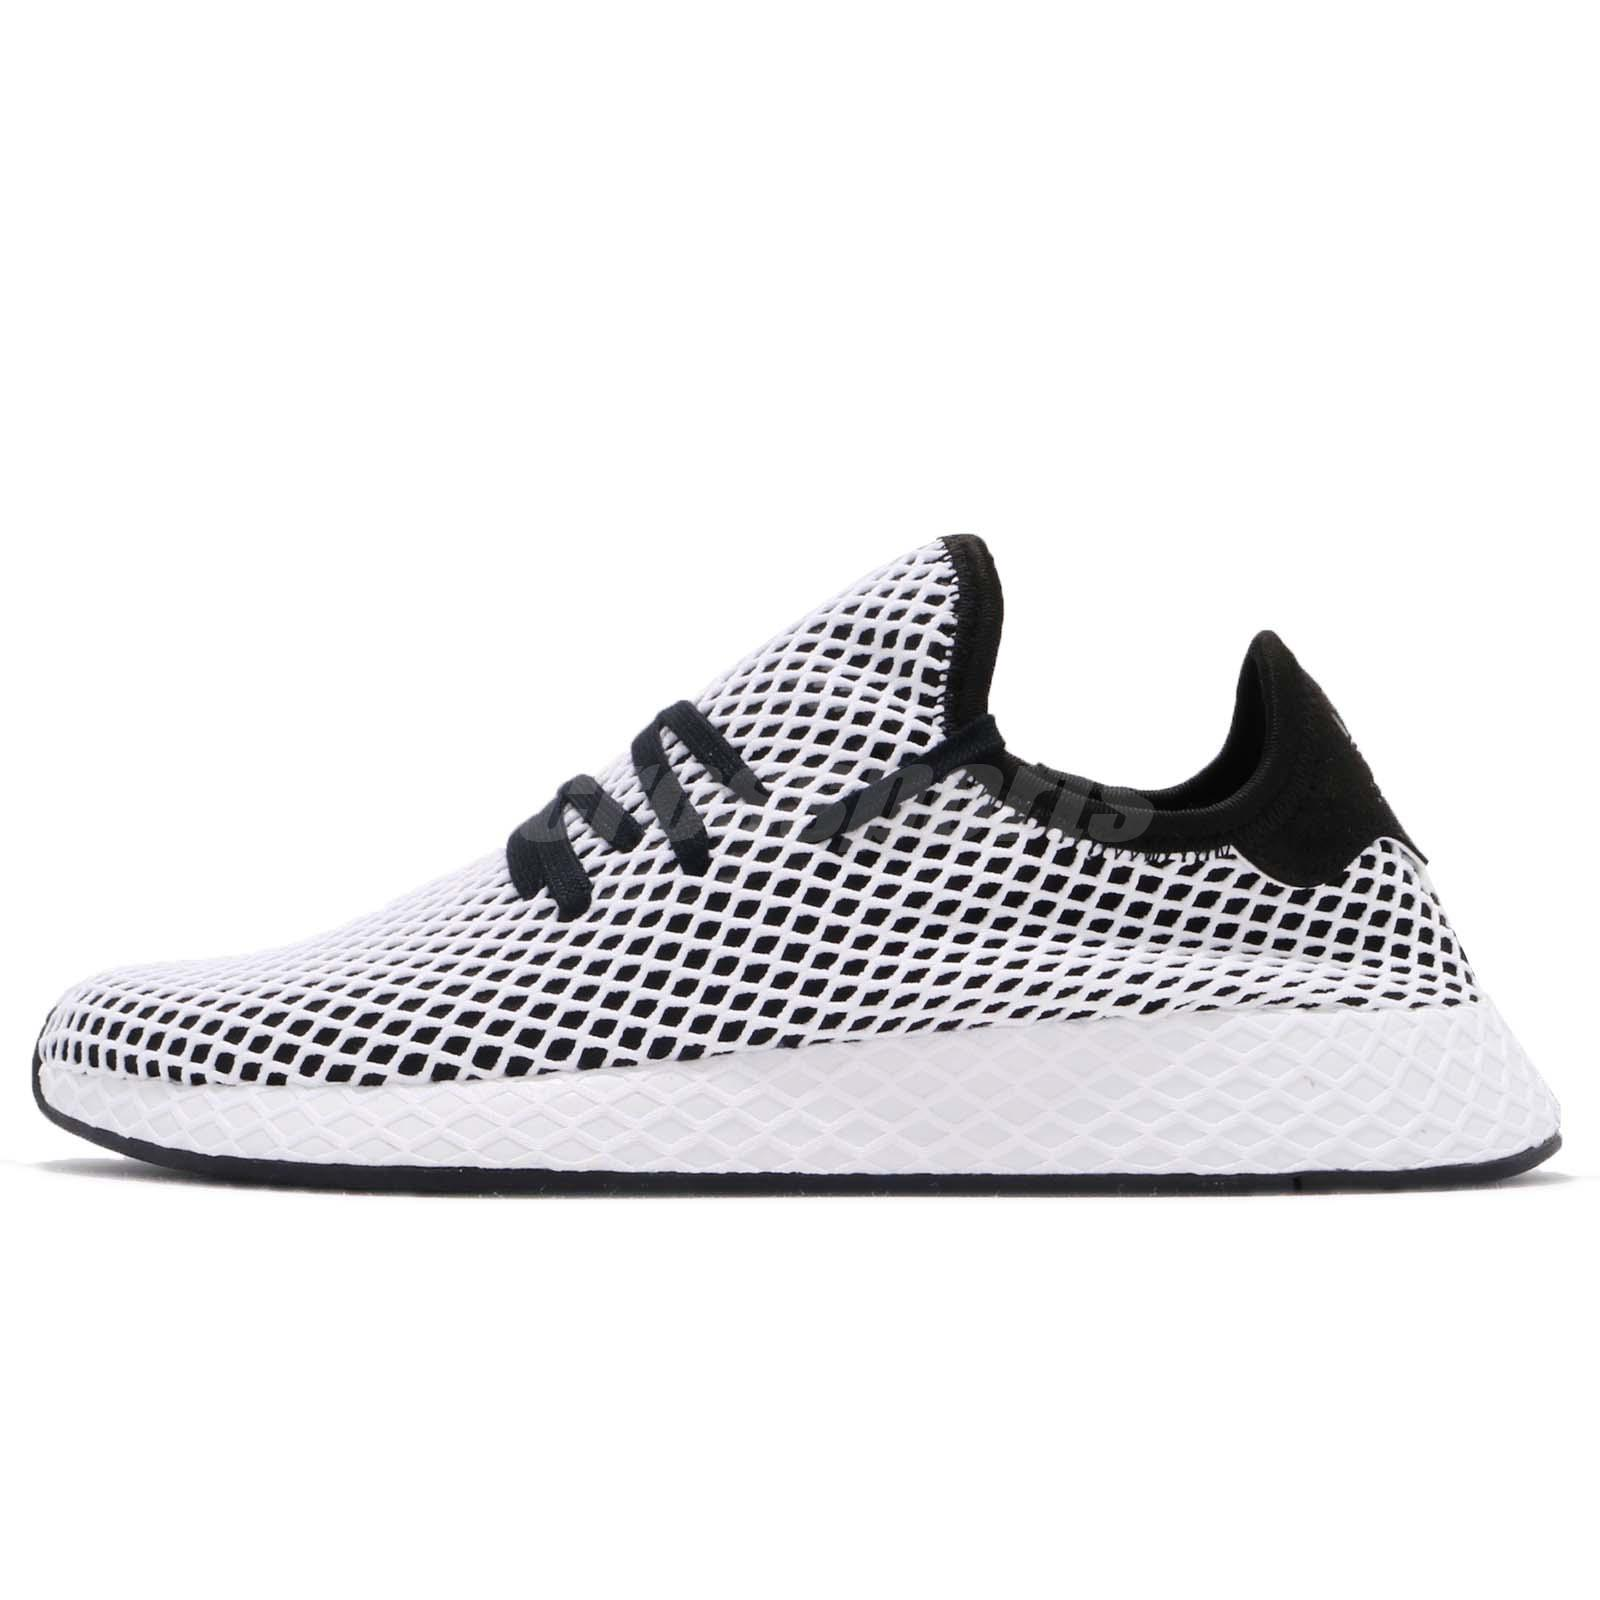 new style f0a80 1d38f adidas Originals Deerupt Runner Black White Men Running Shoes Sneakers  CQ2626